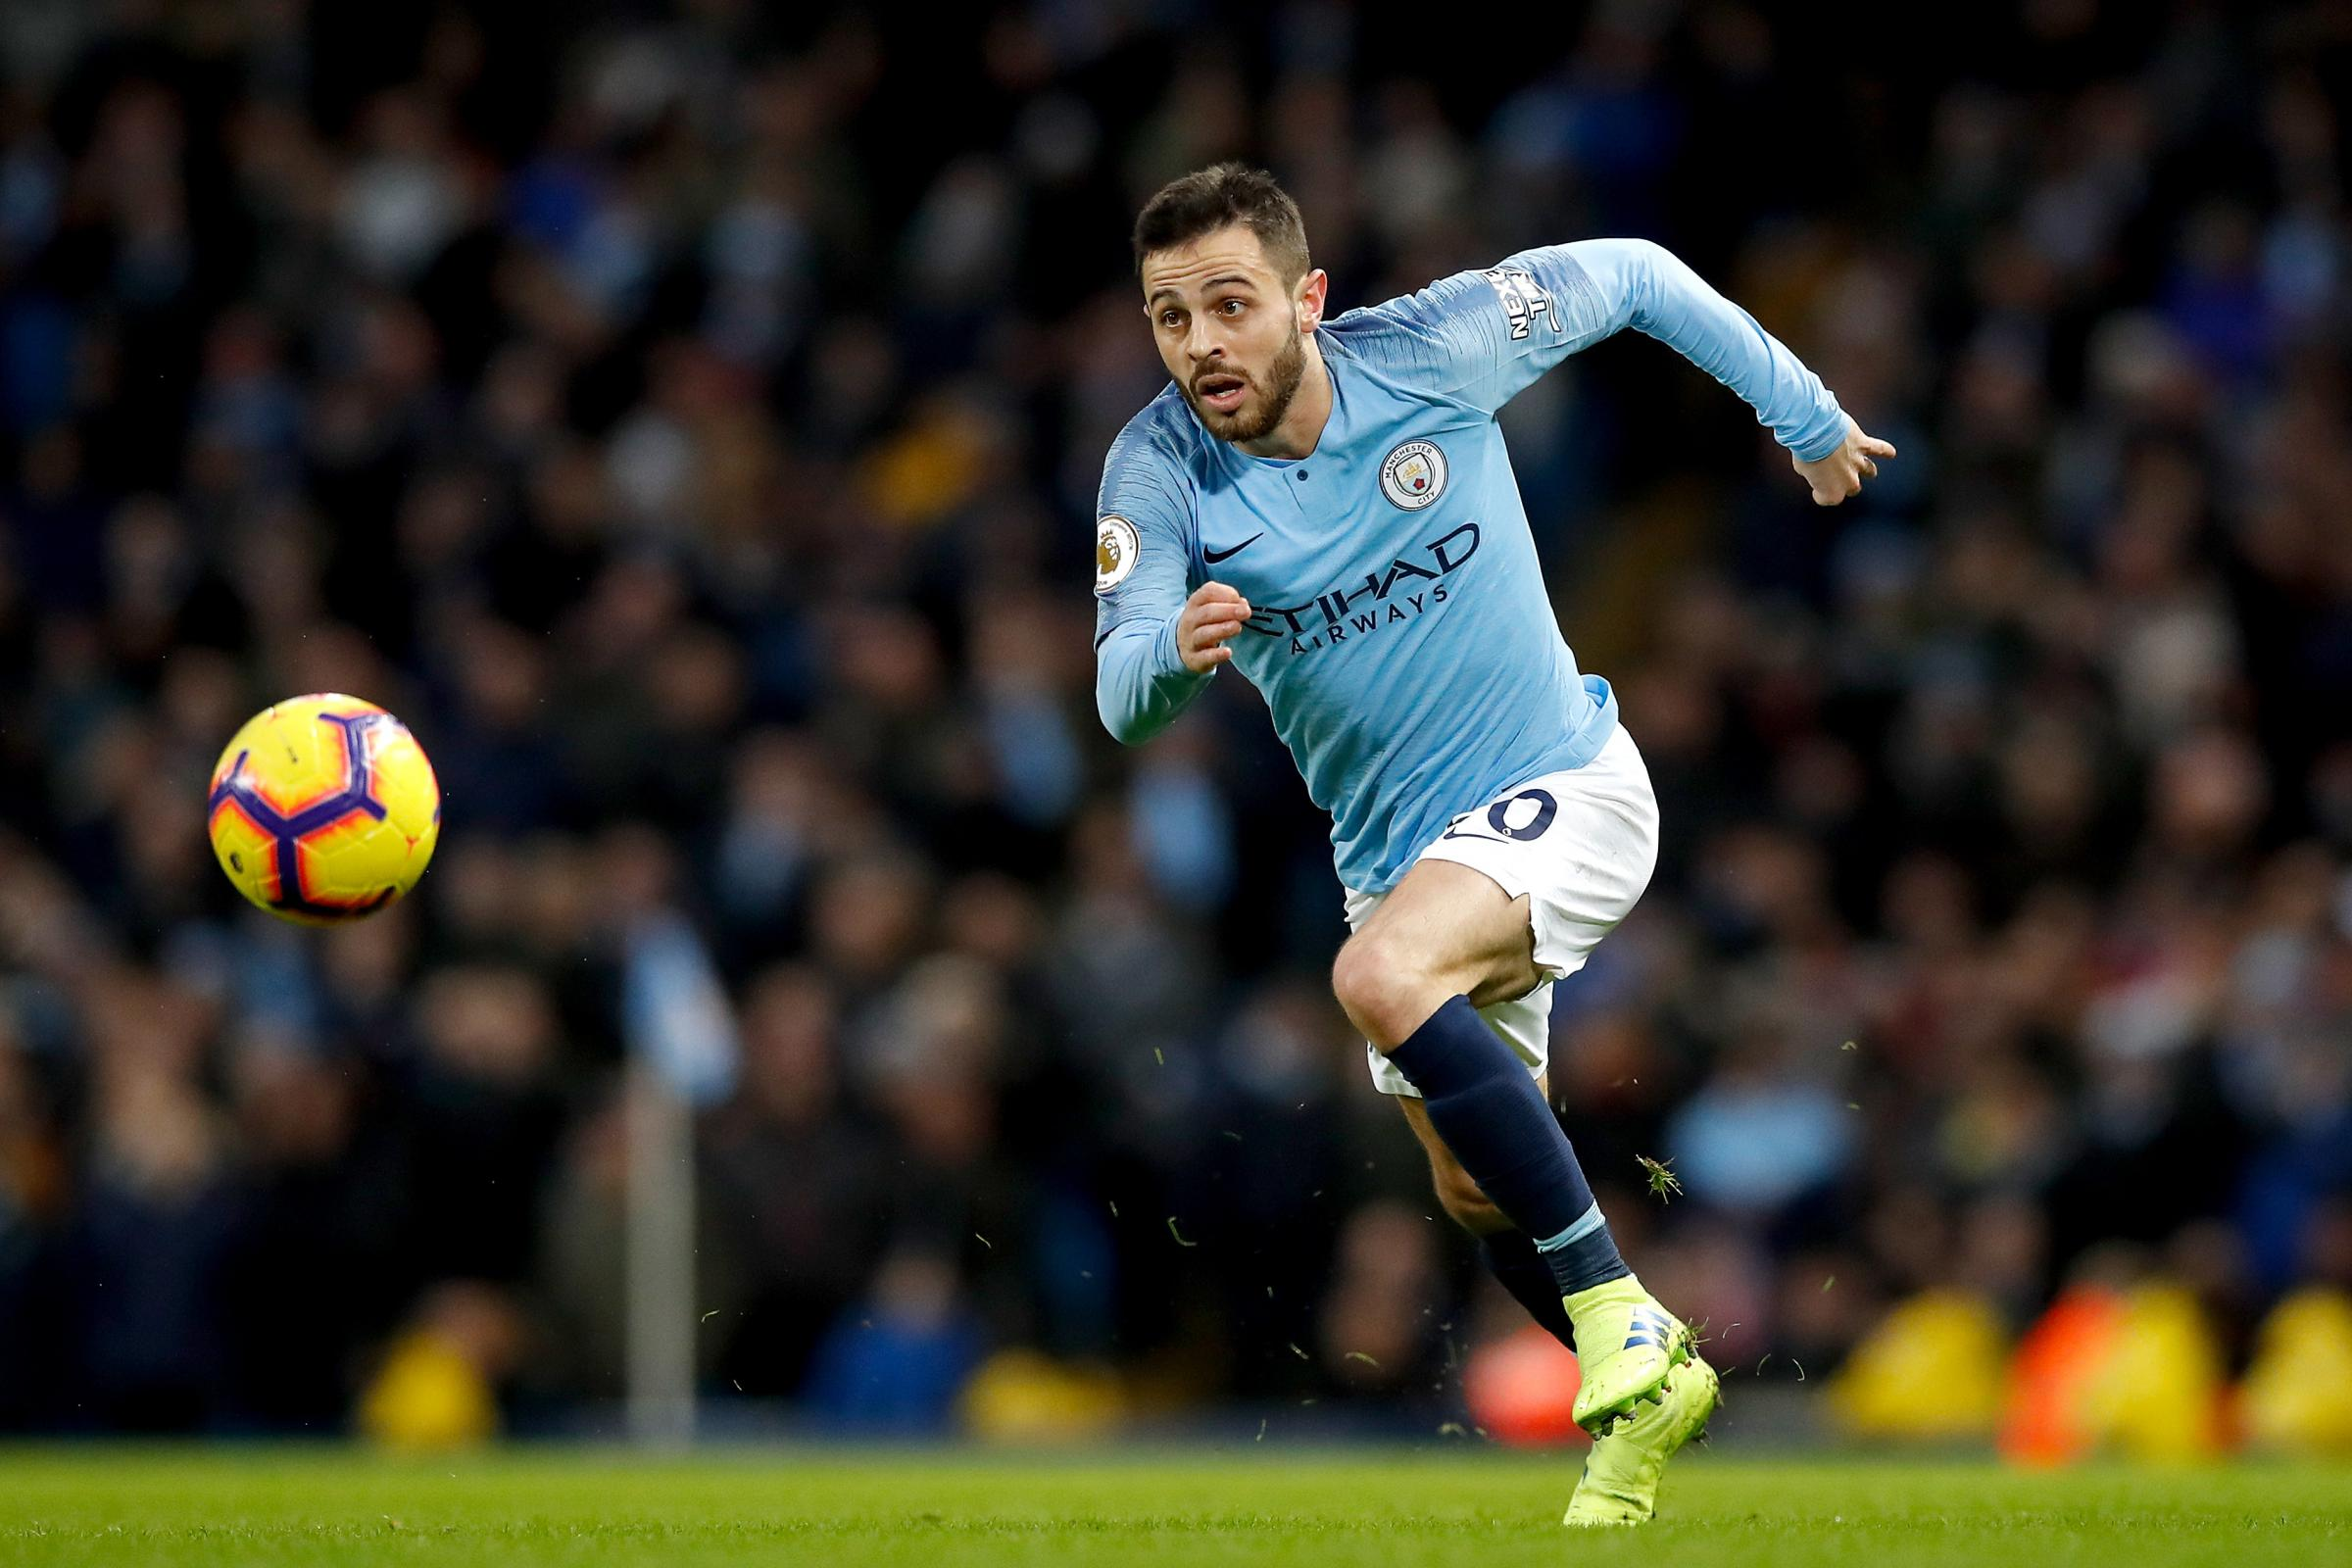 Bernardo Silva feels Manchester City's charge is being fuelled by their quick starts